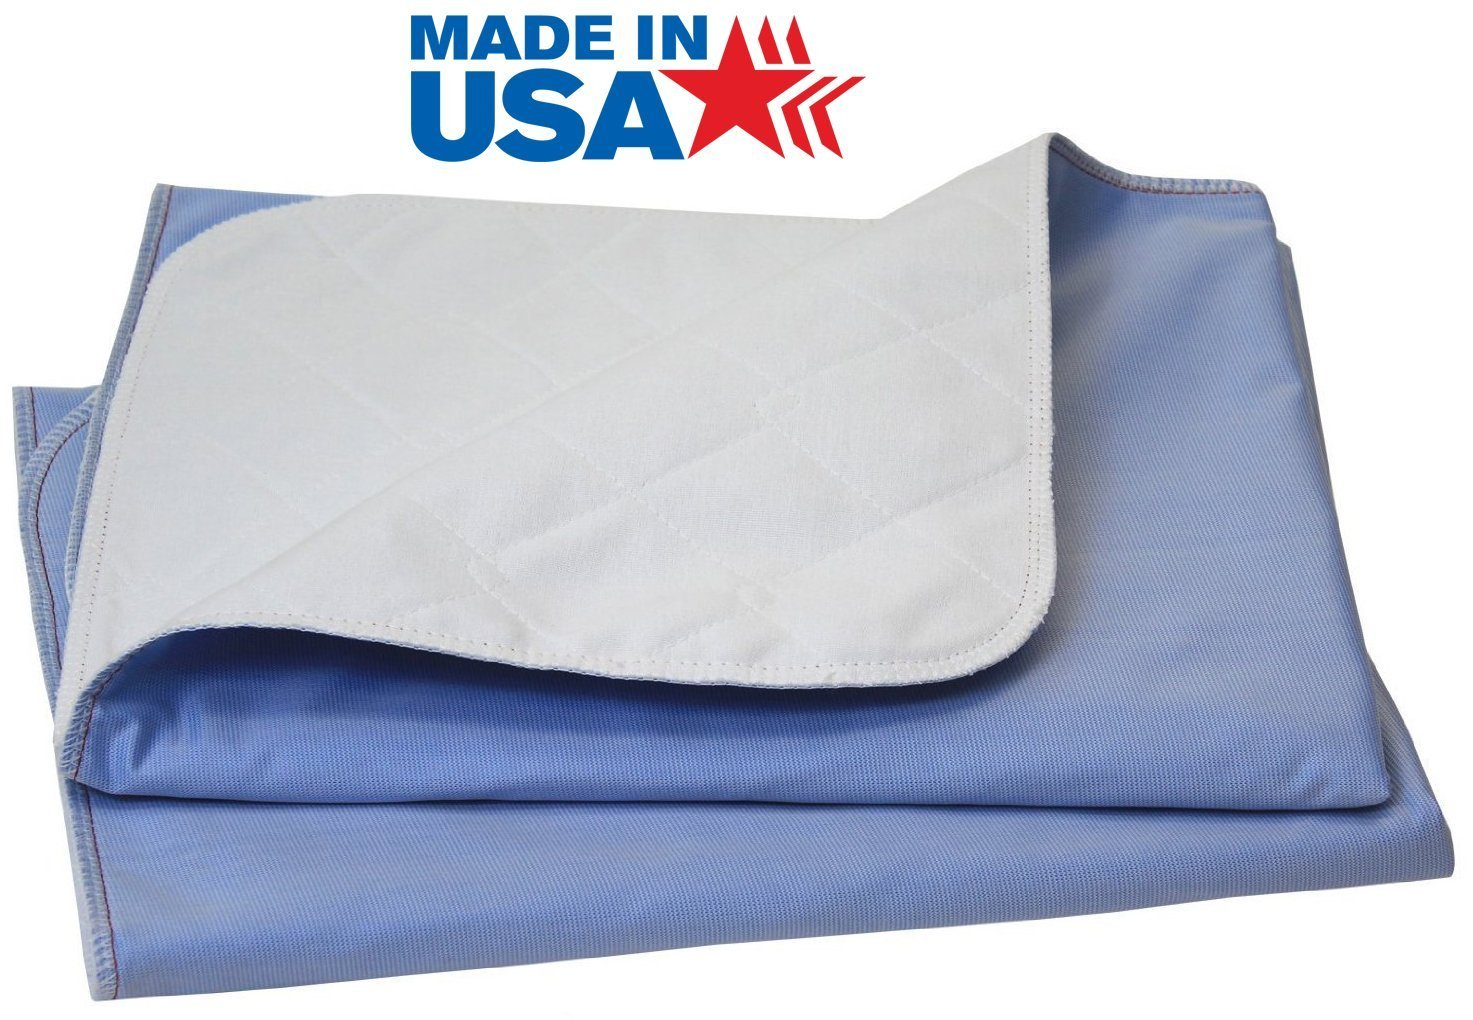 Head2Toe Washable Bed Pad/Reusable Incontinence Underpad in Blue 34x52, Ideal for Children and Adults Wholesale Incontinence Protection